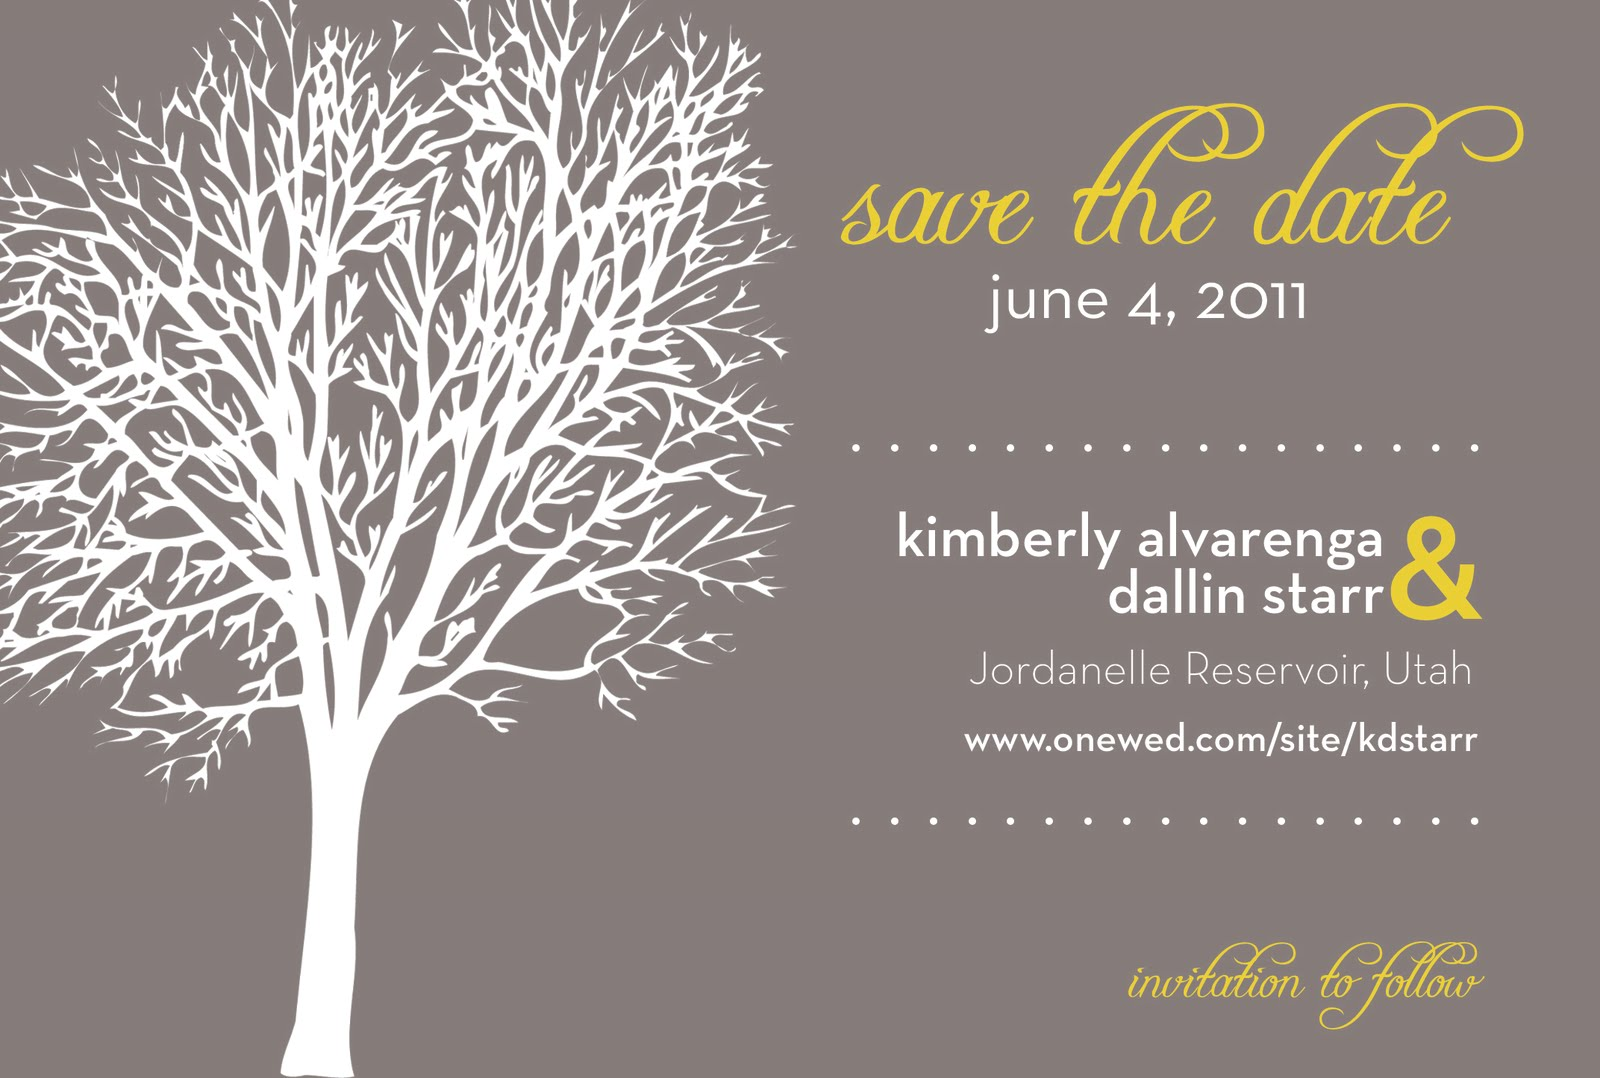 Sample save the date cards for business events arts arts utah events by design tk company accmission Images